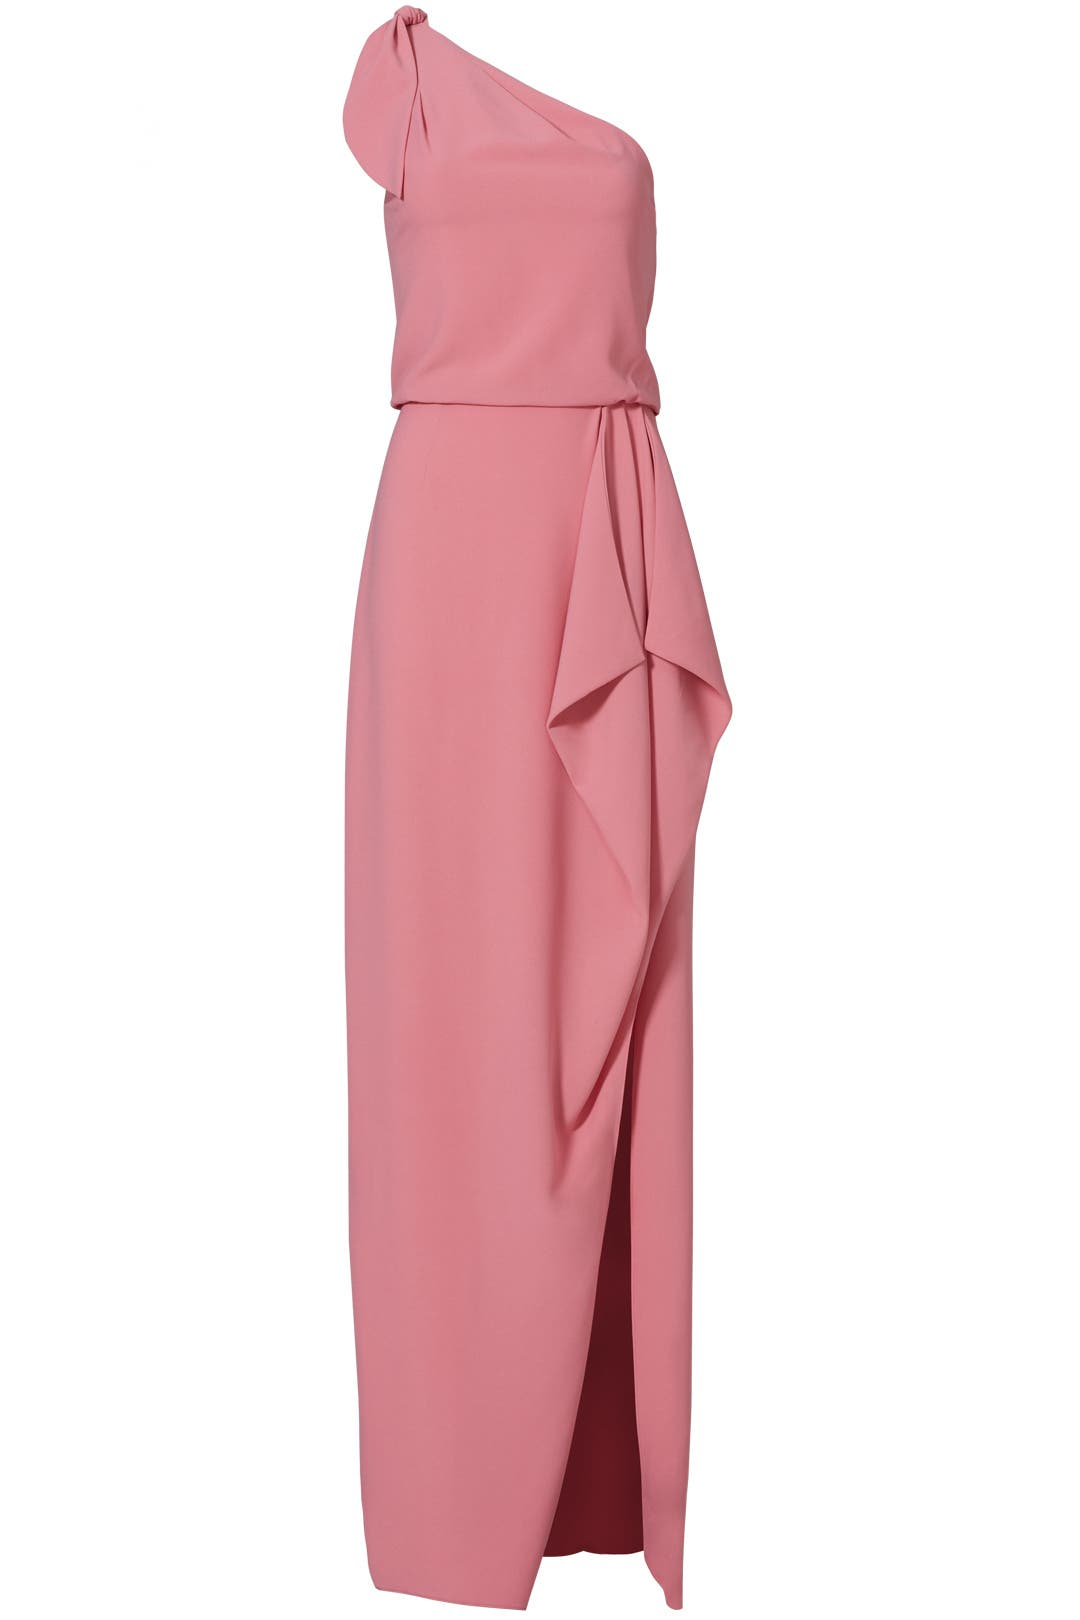 Peony Crepe Gown by Halston Heritage for $50 - $70 | Rent the Runway